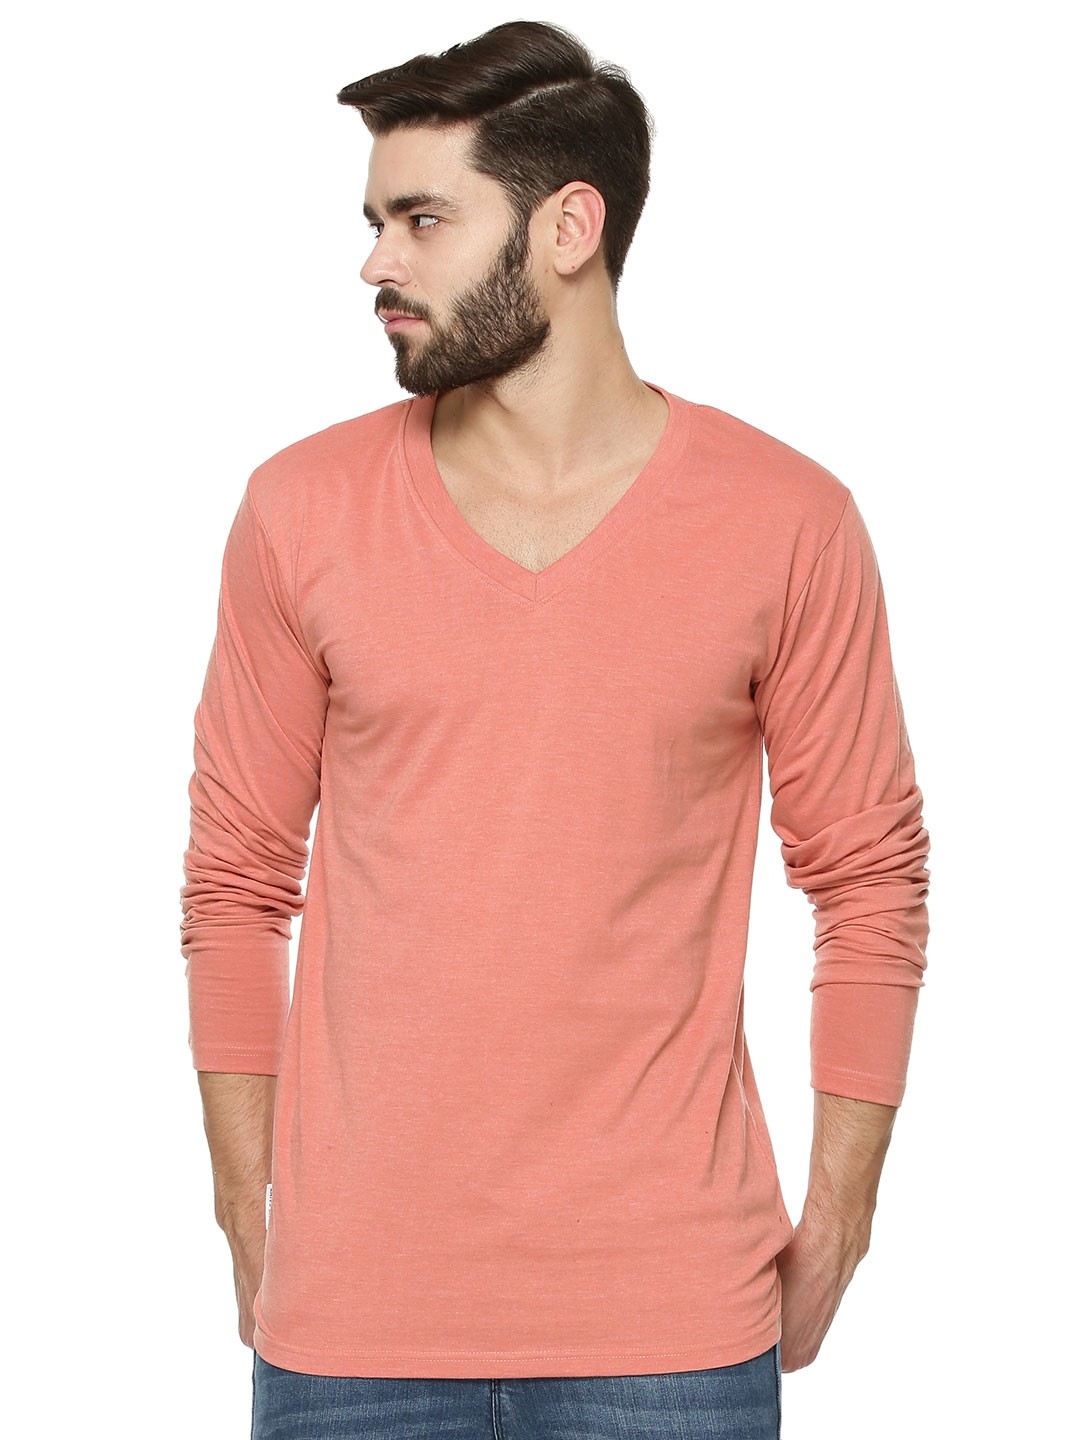 Buy Blue Saint Basic V Neck Full Sleeves T Shirt For Men